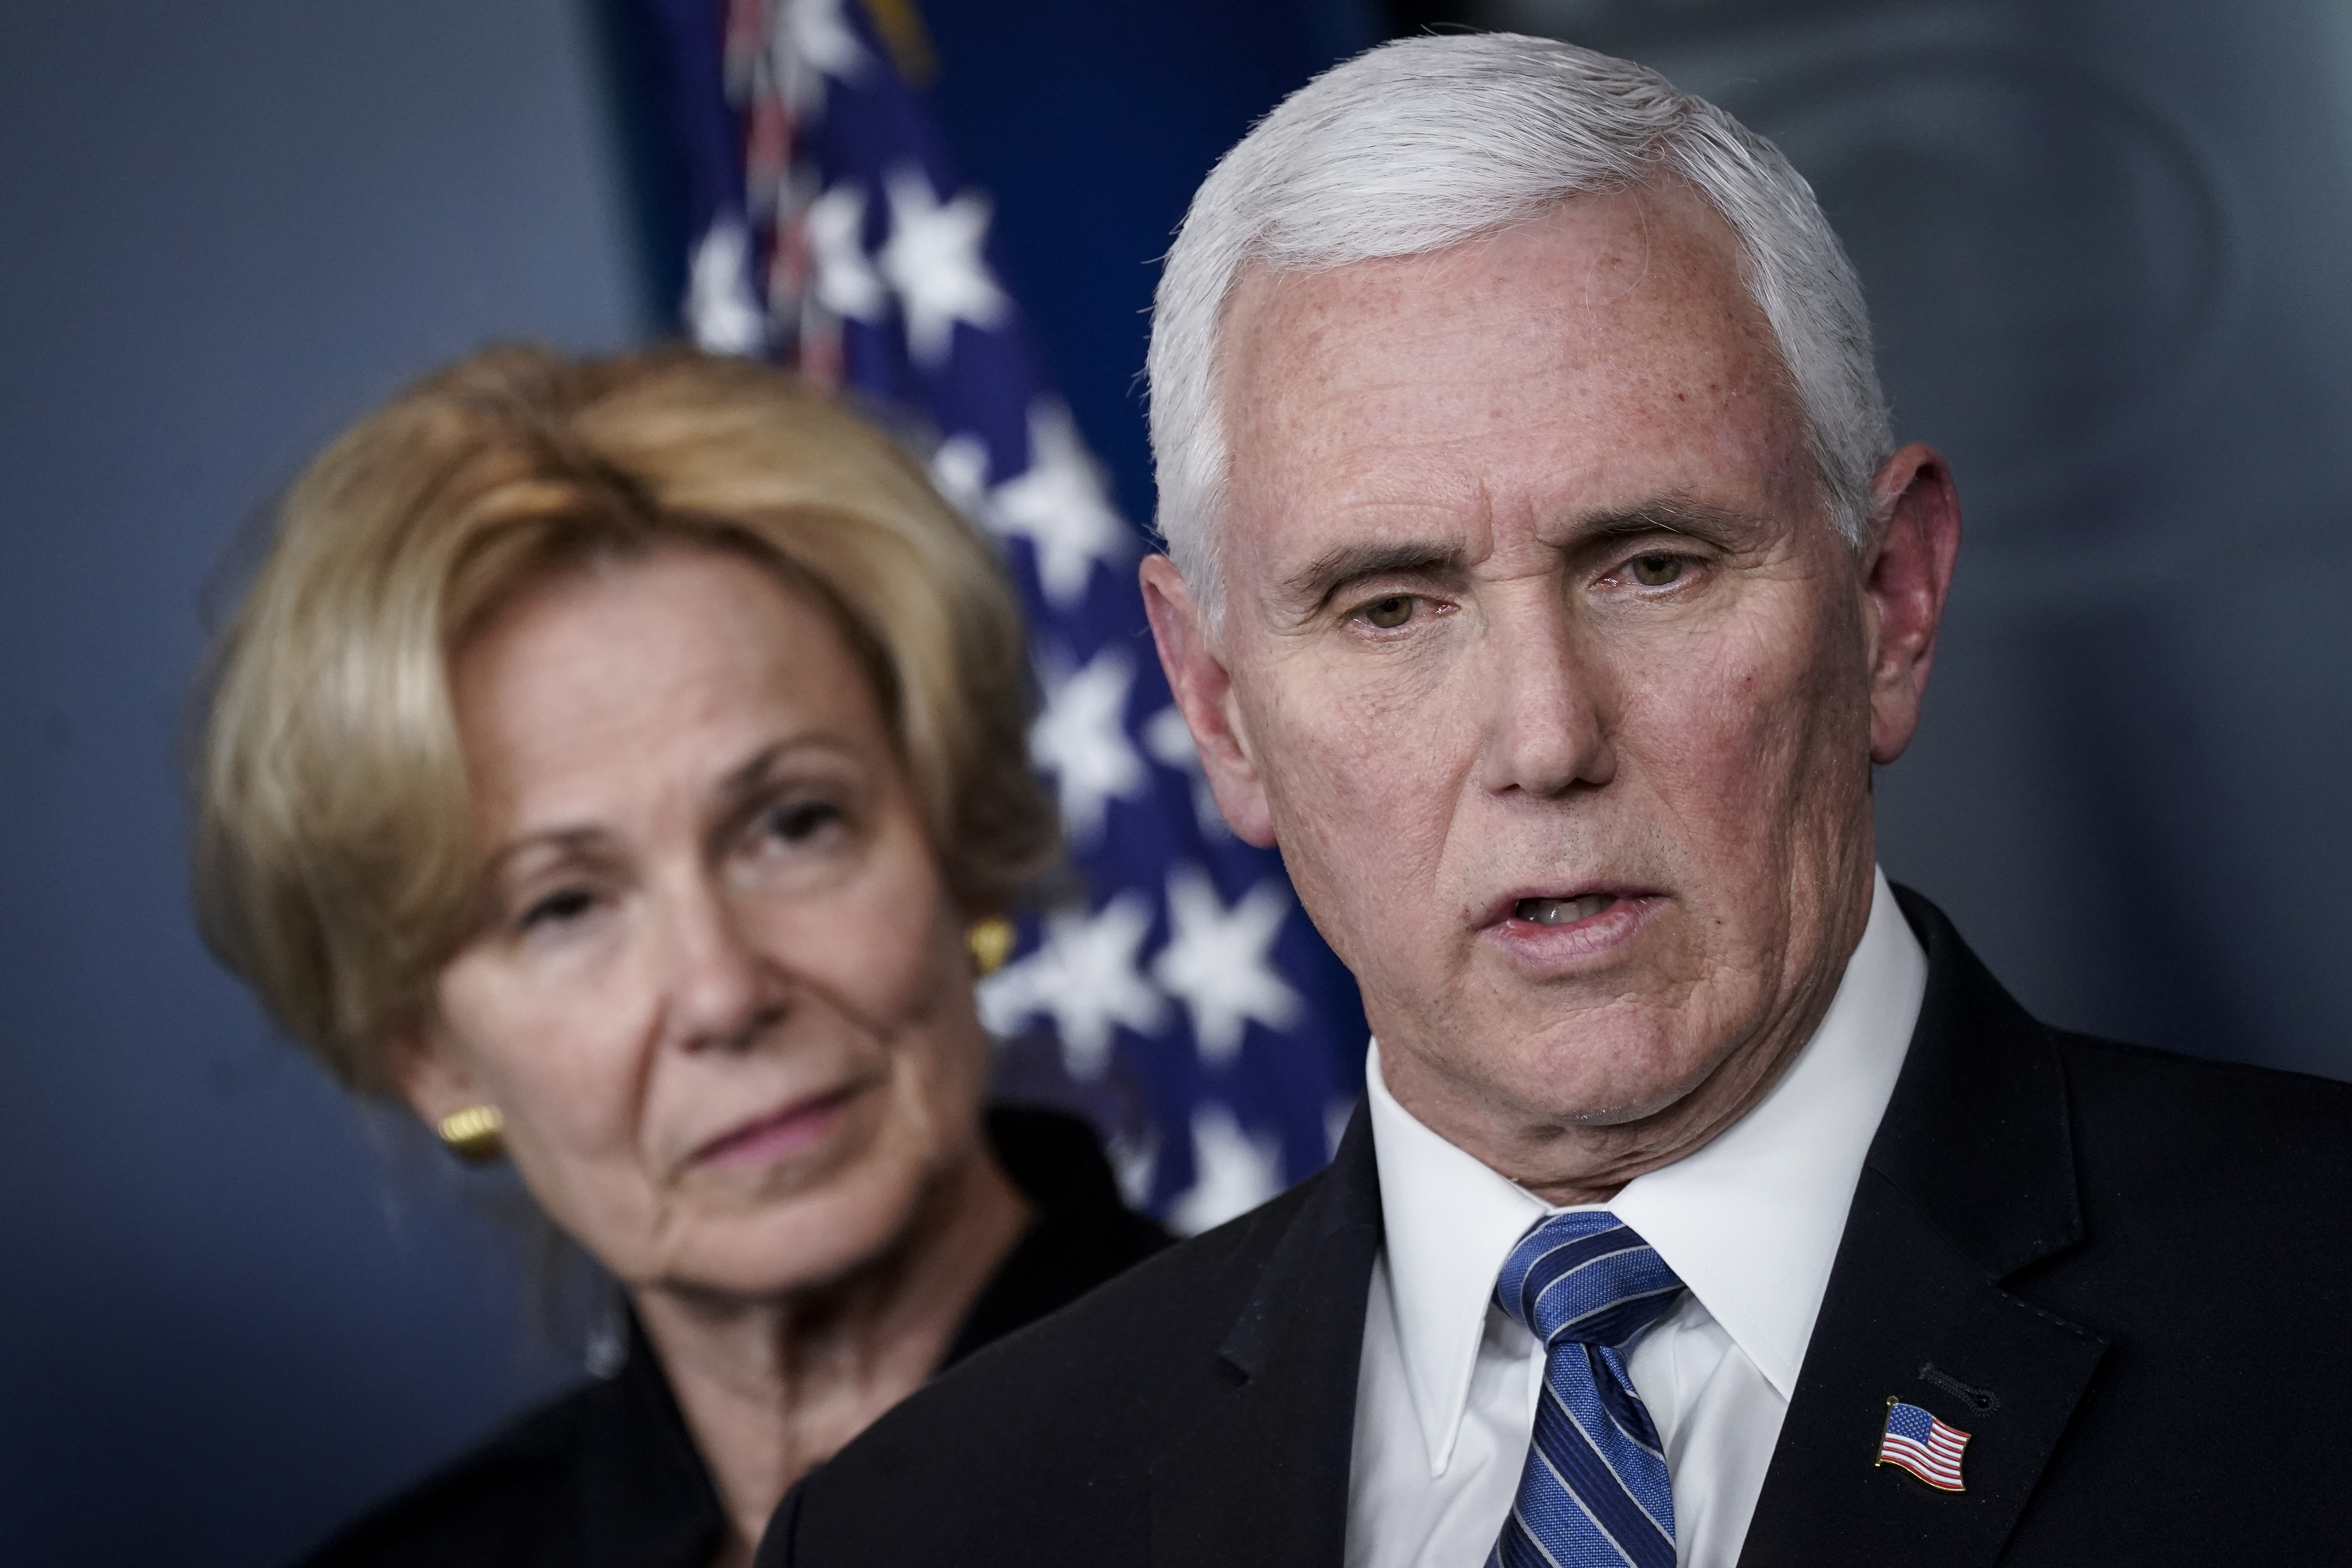 Debbie Birx, White House Corona Virus Response Coordinator, looks on as U.S. Vice President Mike Pence speaks during a briefing on the administration's coronavirus response in the press briefing room of the White House on March 2, 2020 in Washington, DC. (Drew Angerer/Getty Images)